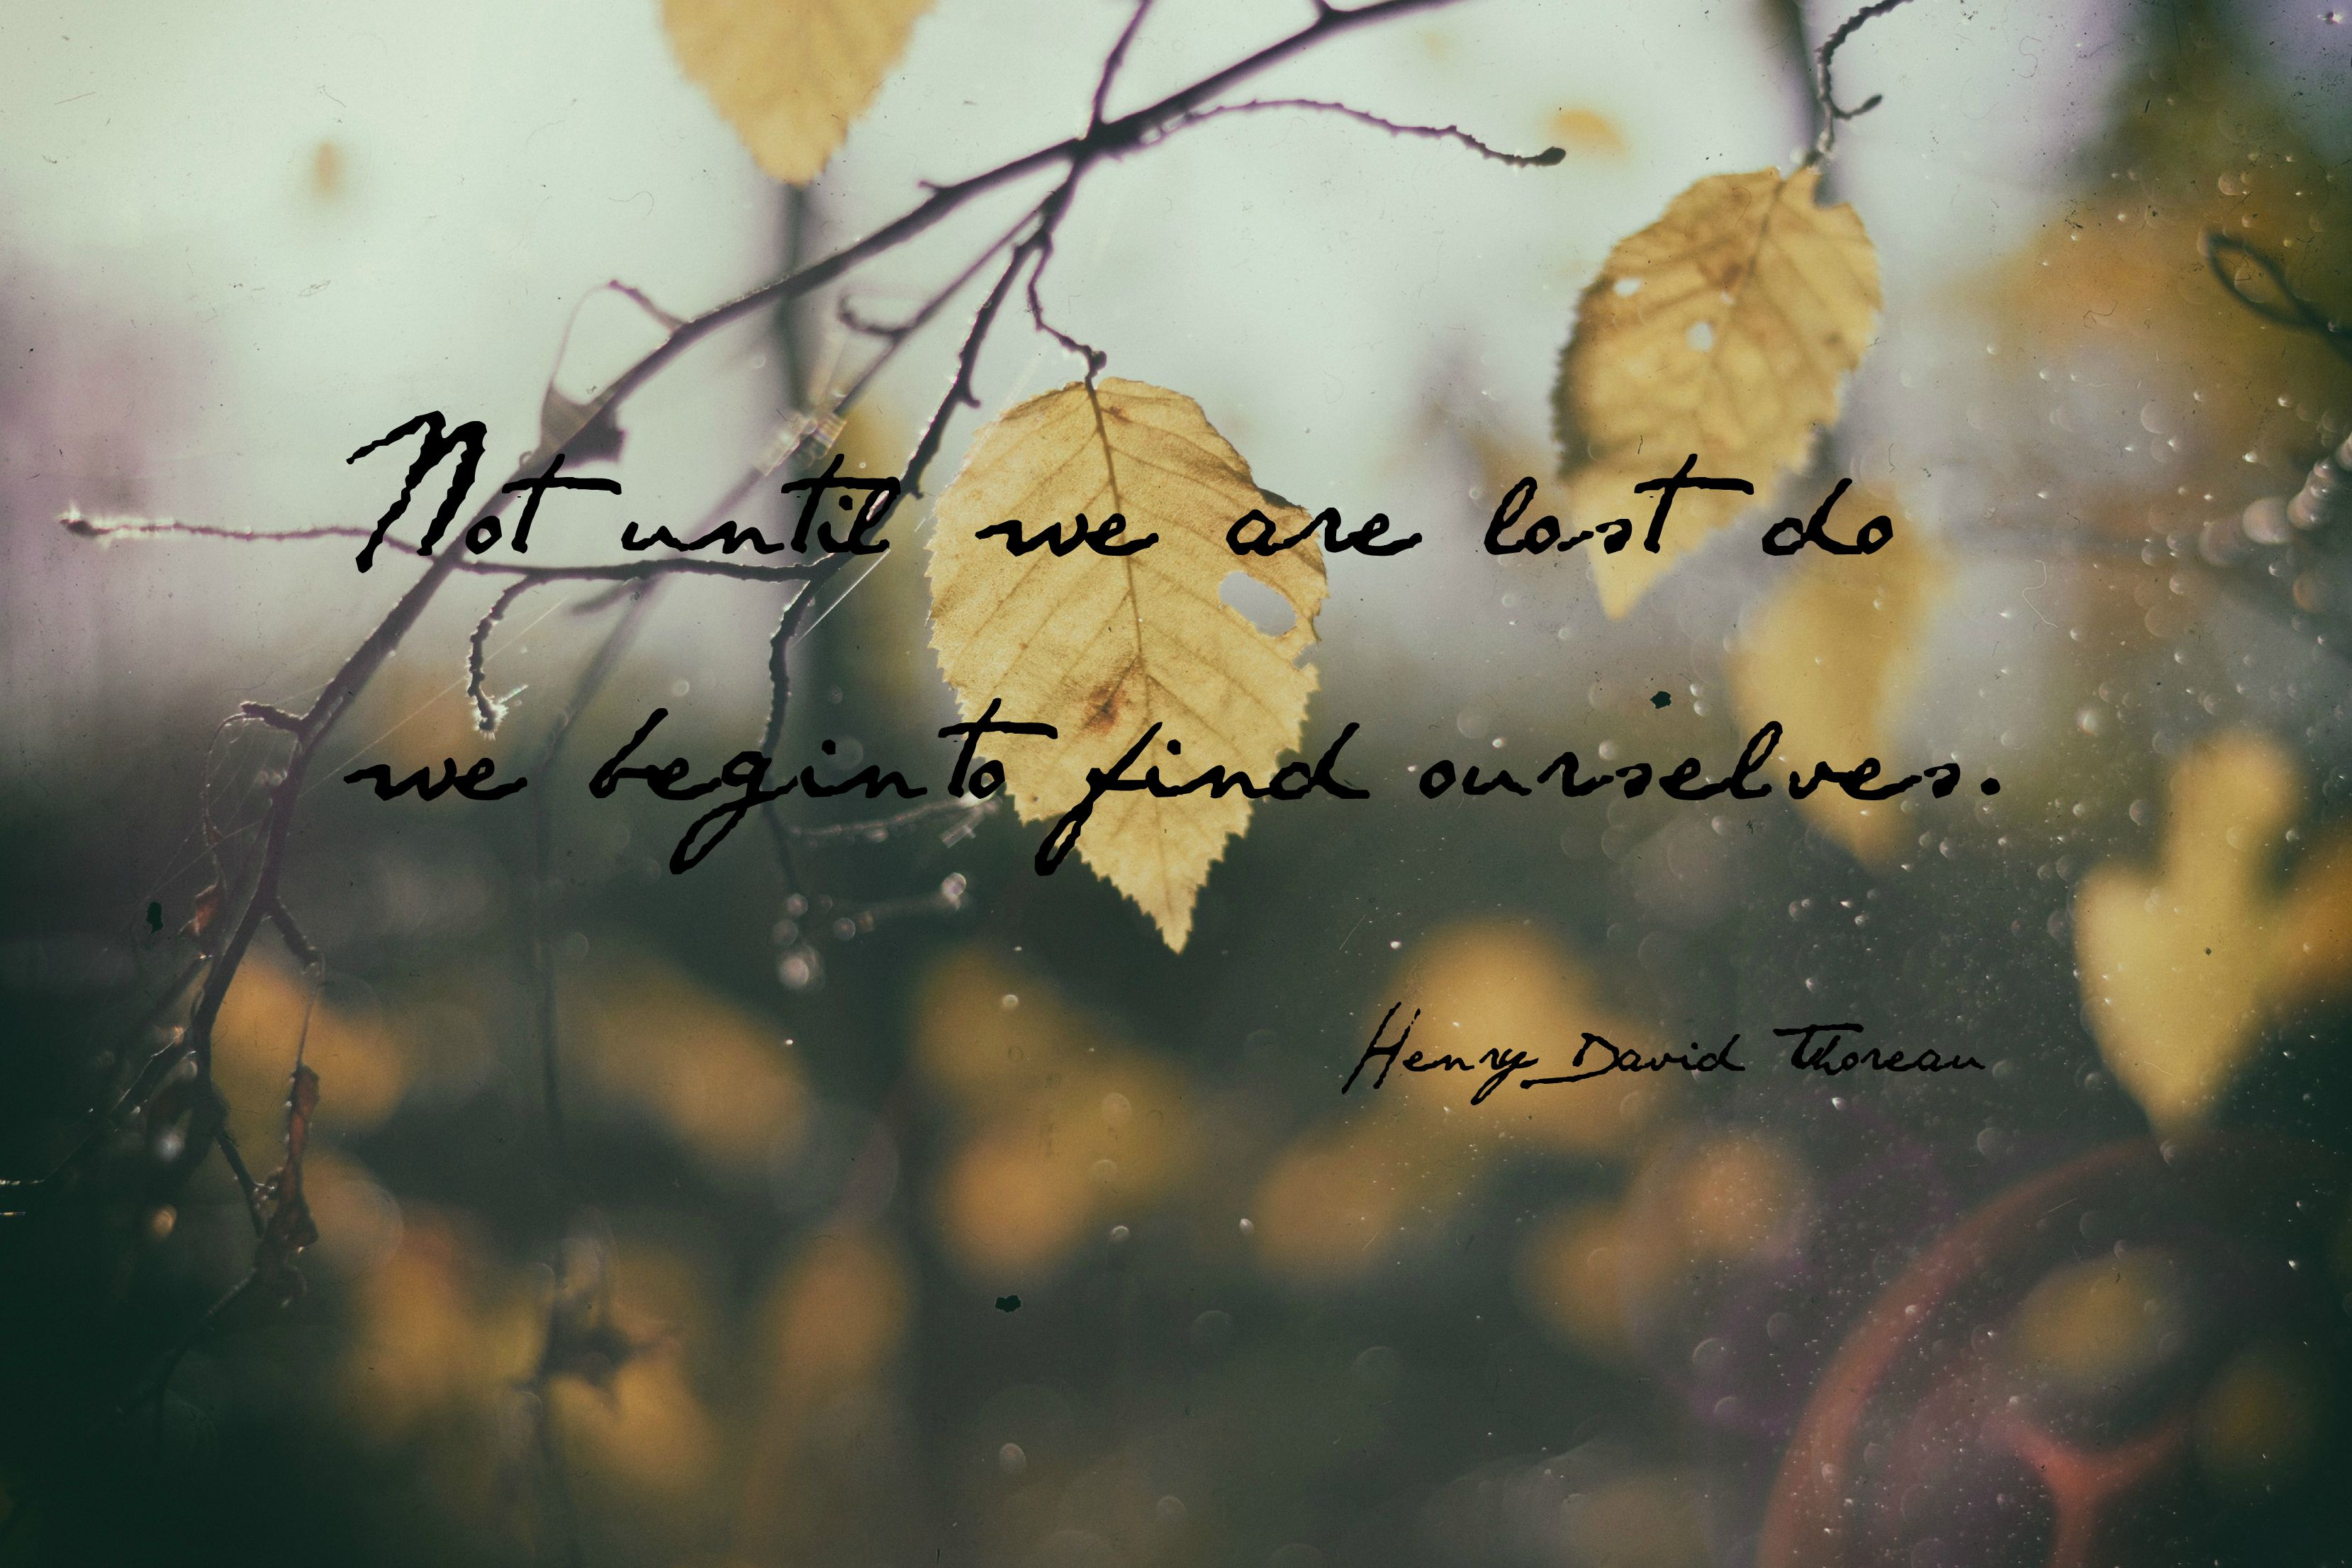 """Not until we are lost do we begin to find ourselves."" --Henry David Thoreau"